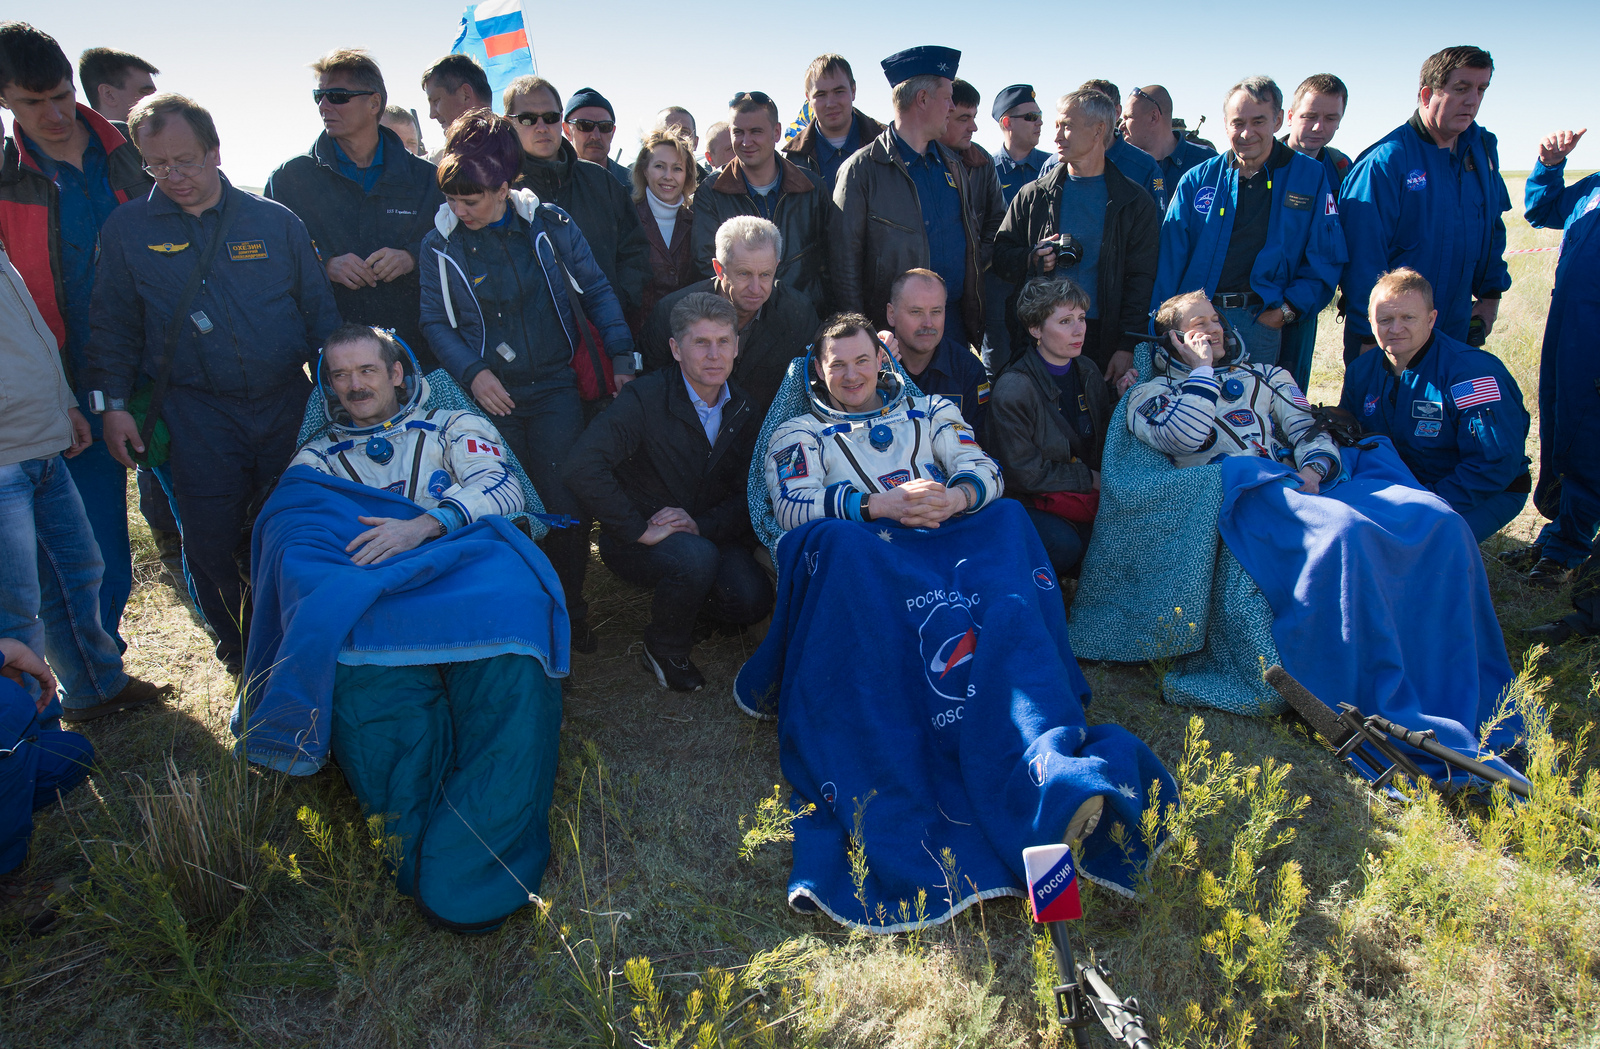 Astronauts Hadfield, Romanenko and Marshburn Return to Earth